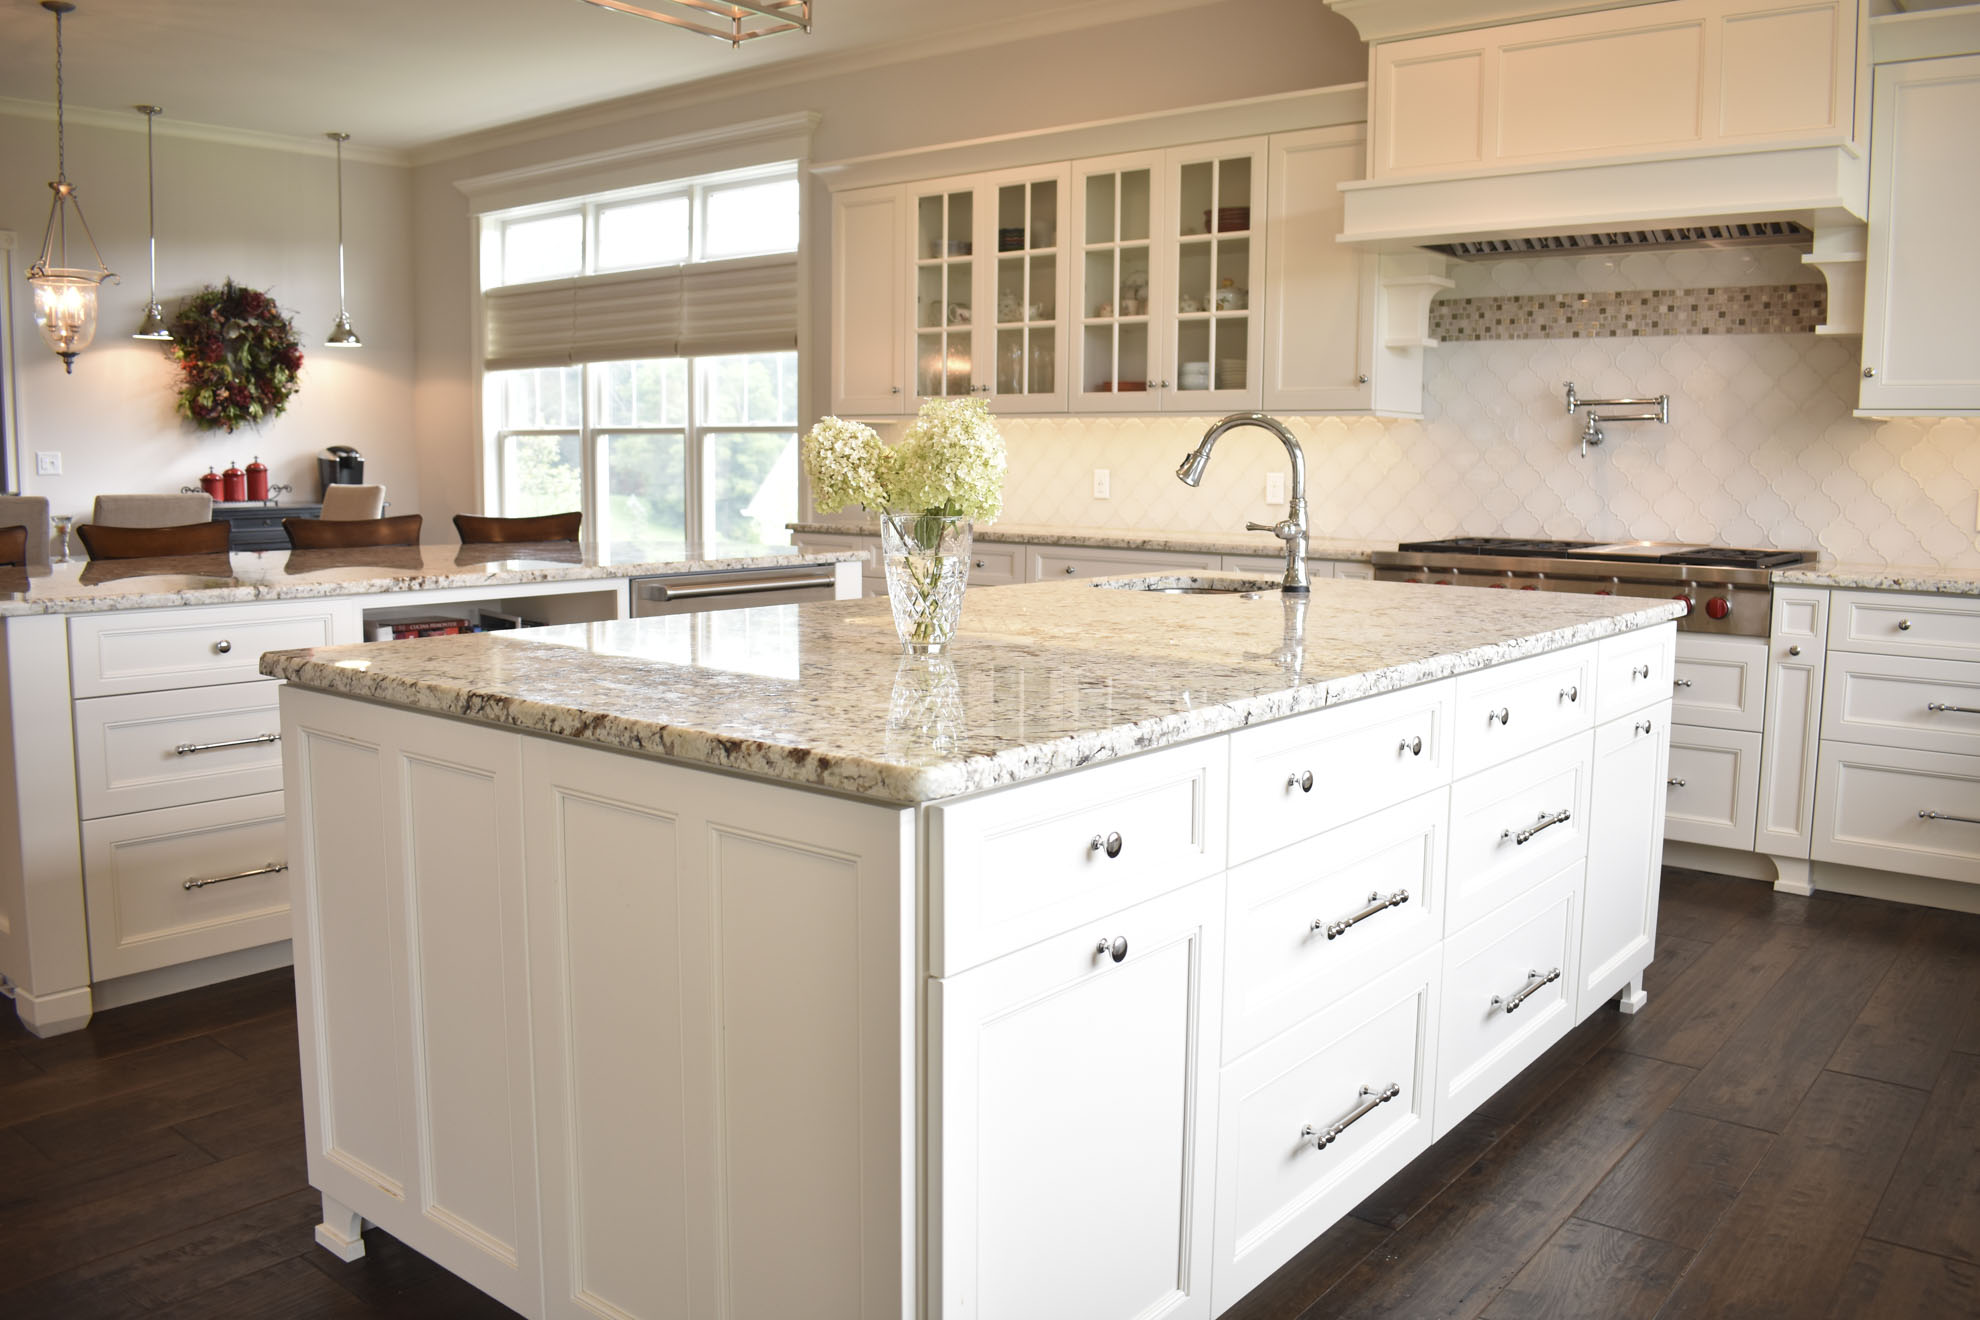 How To Choose the Perfect Kitchen Island for Your Kitchen